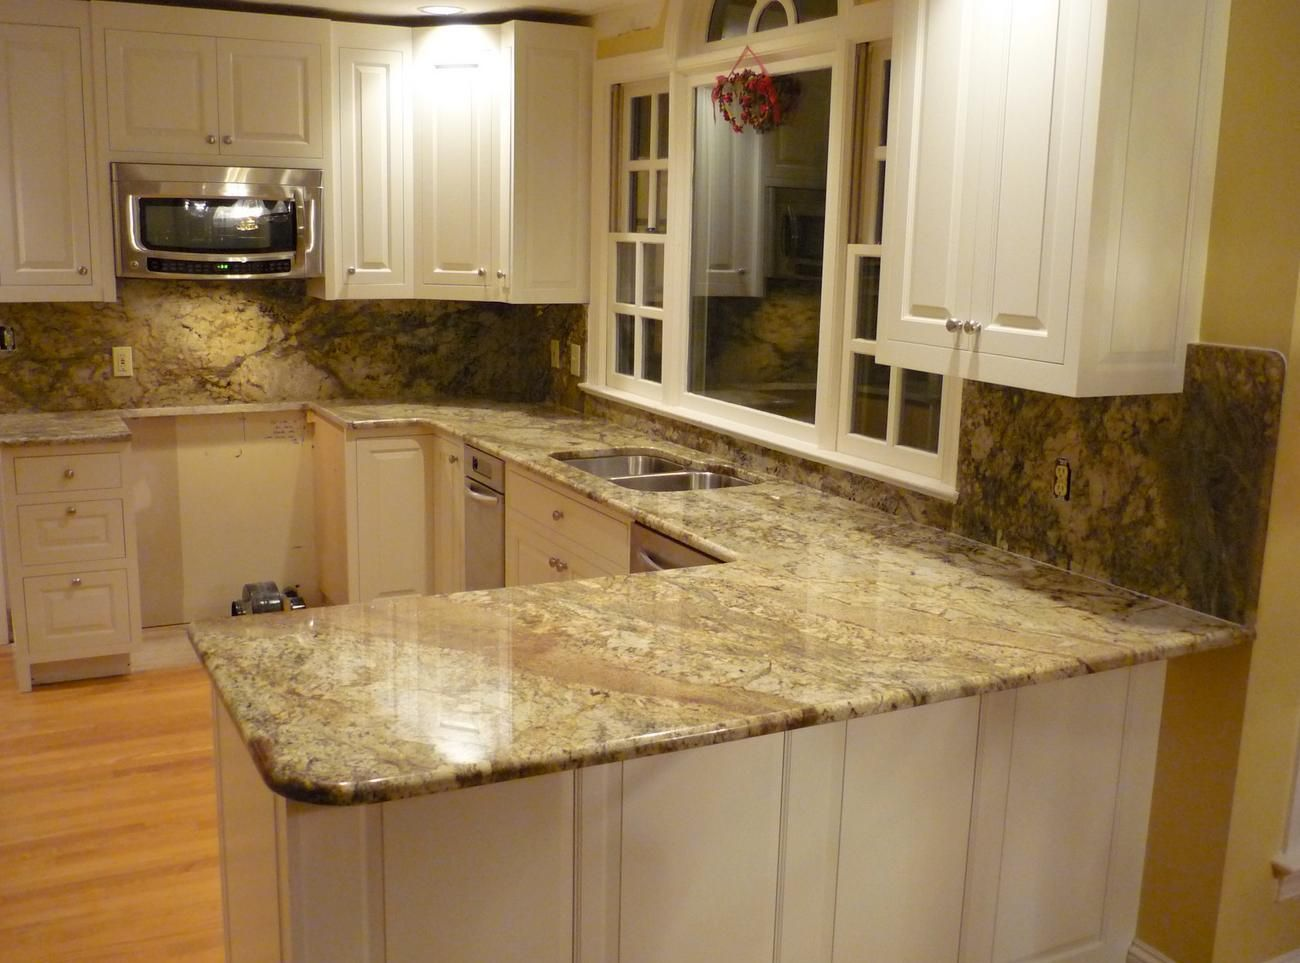 countertop solid granite ideas wood buy surface me of look design captivating that pattern size island honed prices best slabs dealers countertops atlanta tile for pictures full where corian near backsplash composite affordable kitchen and solutions stone quartz to like cement